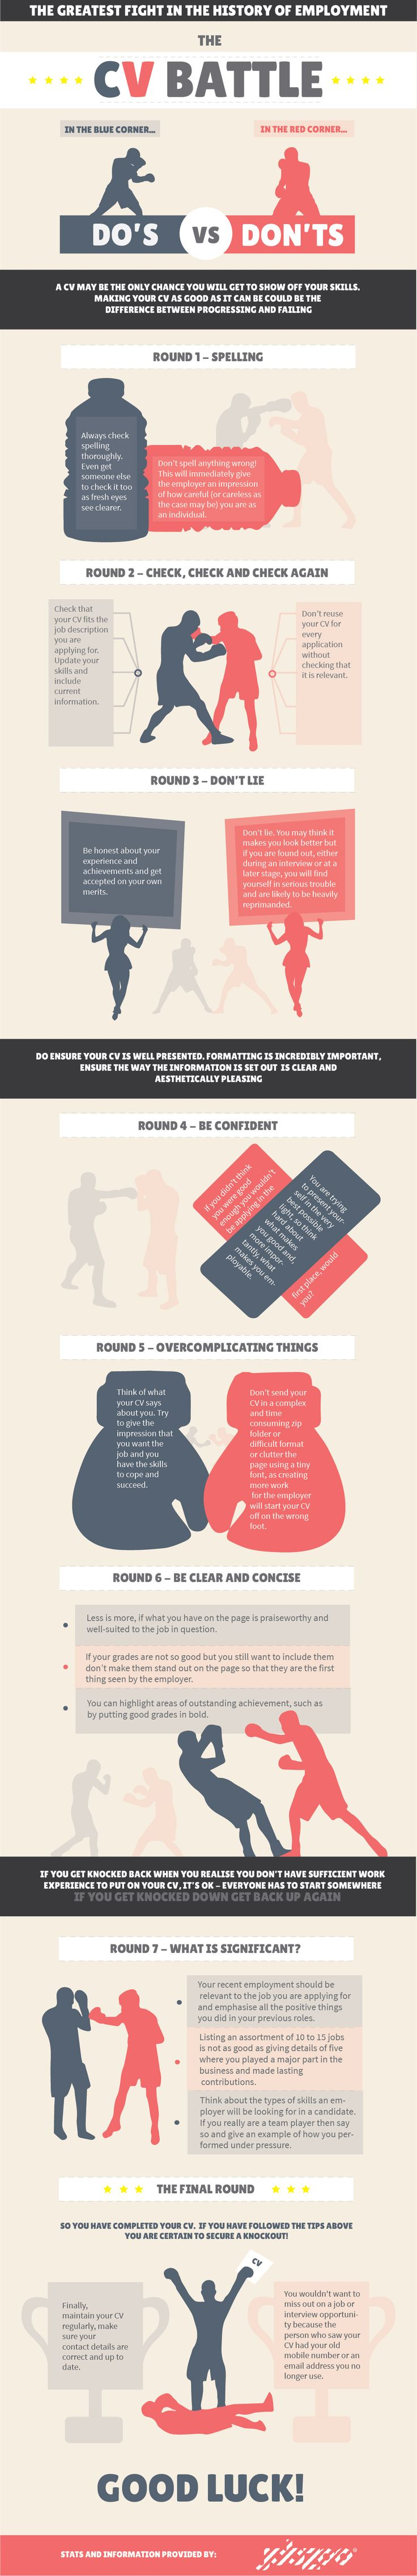 resume Dos And Donts Of Resume 34 best the muse resume ready images on pinterest cv battle dos and donts infographic